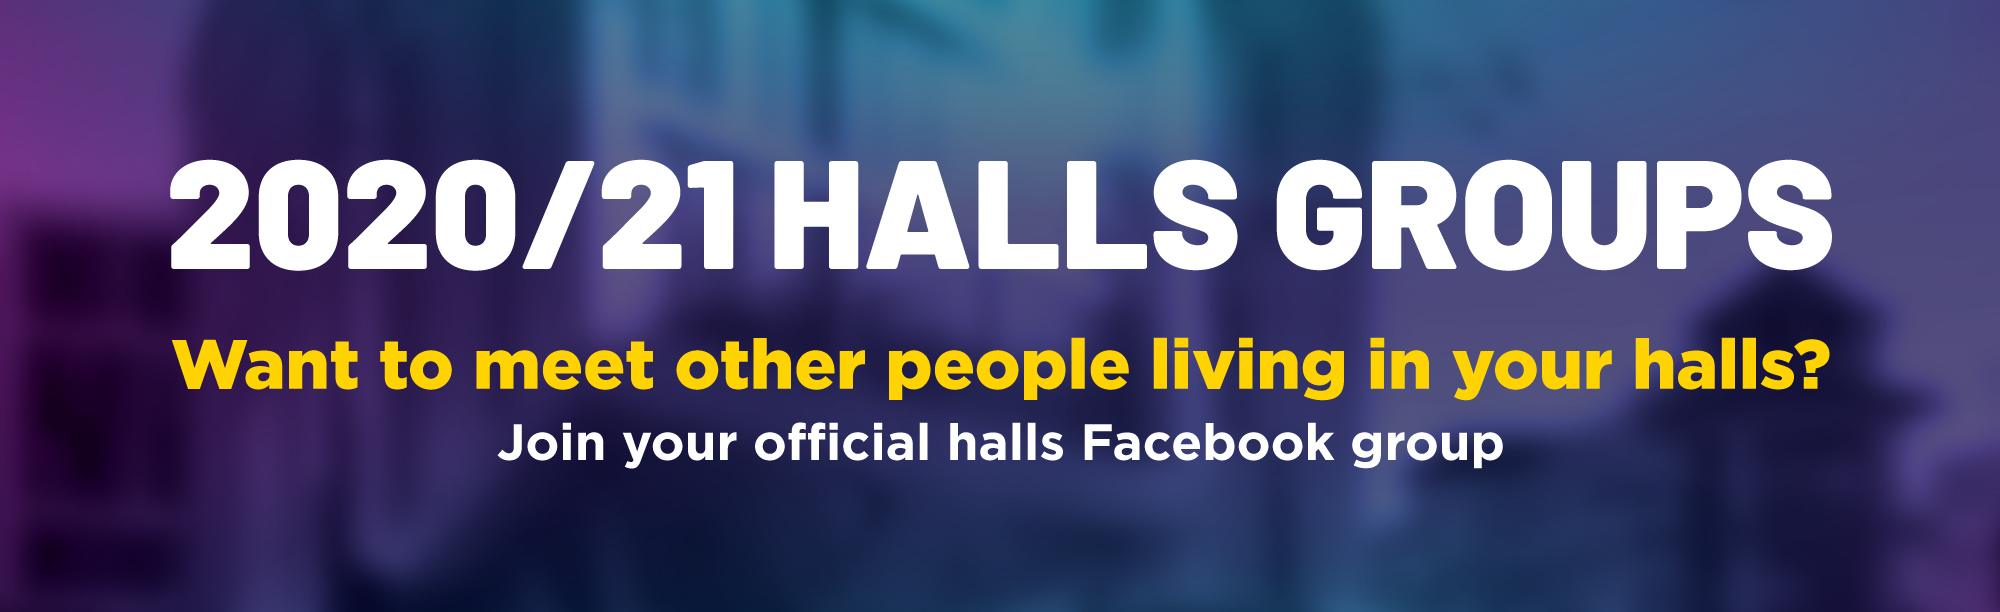 2020/21 Halls groups, want to meet other people living in your halls? Join your official halls Facebook group